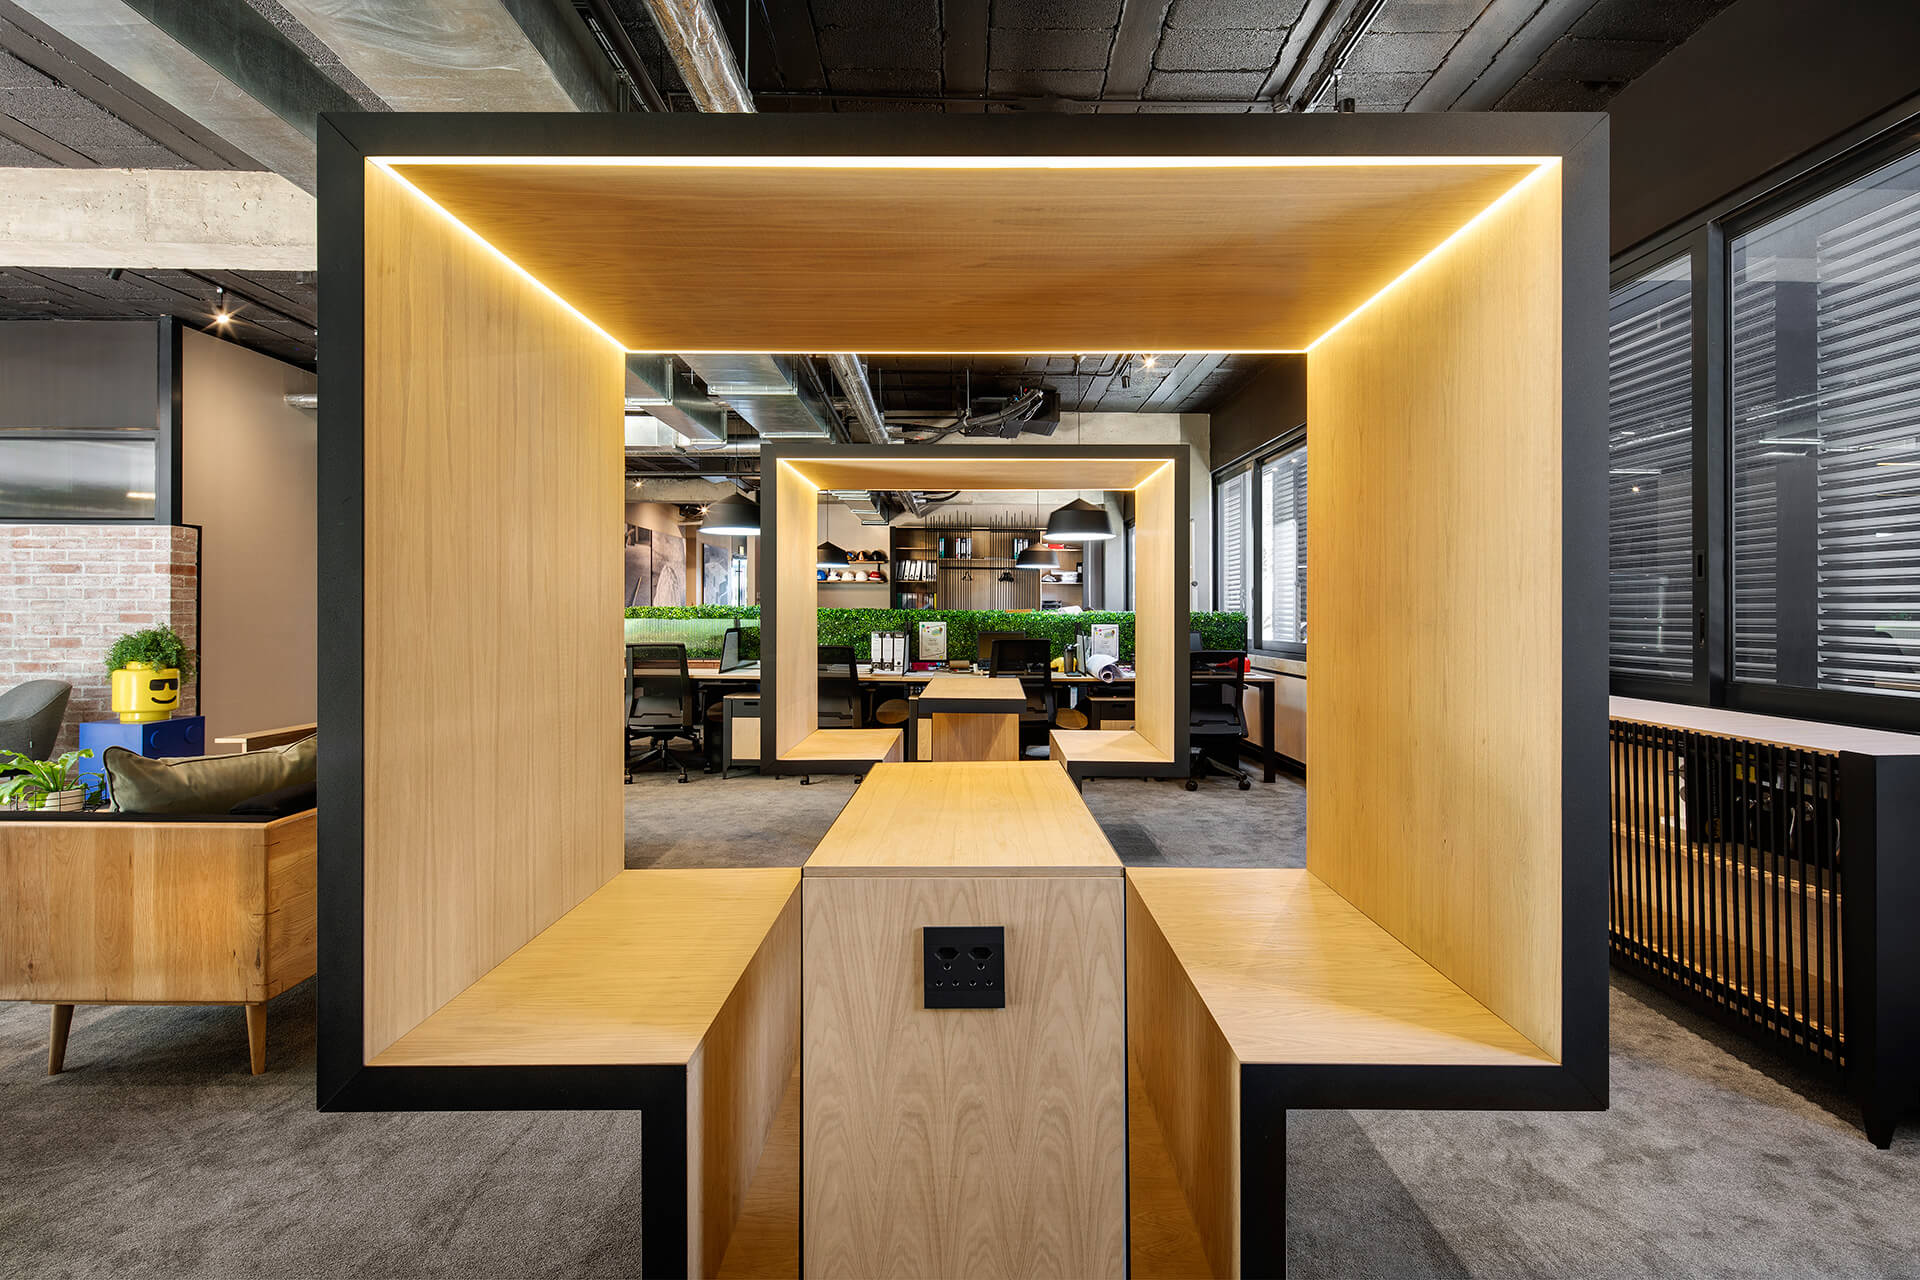 The co-working spaces in the commercial building | 78 Corlett Drive | Daffonchio and Associates Architects | STIRworld